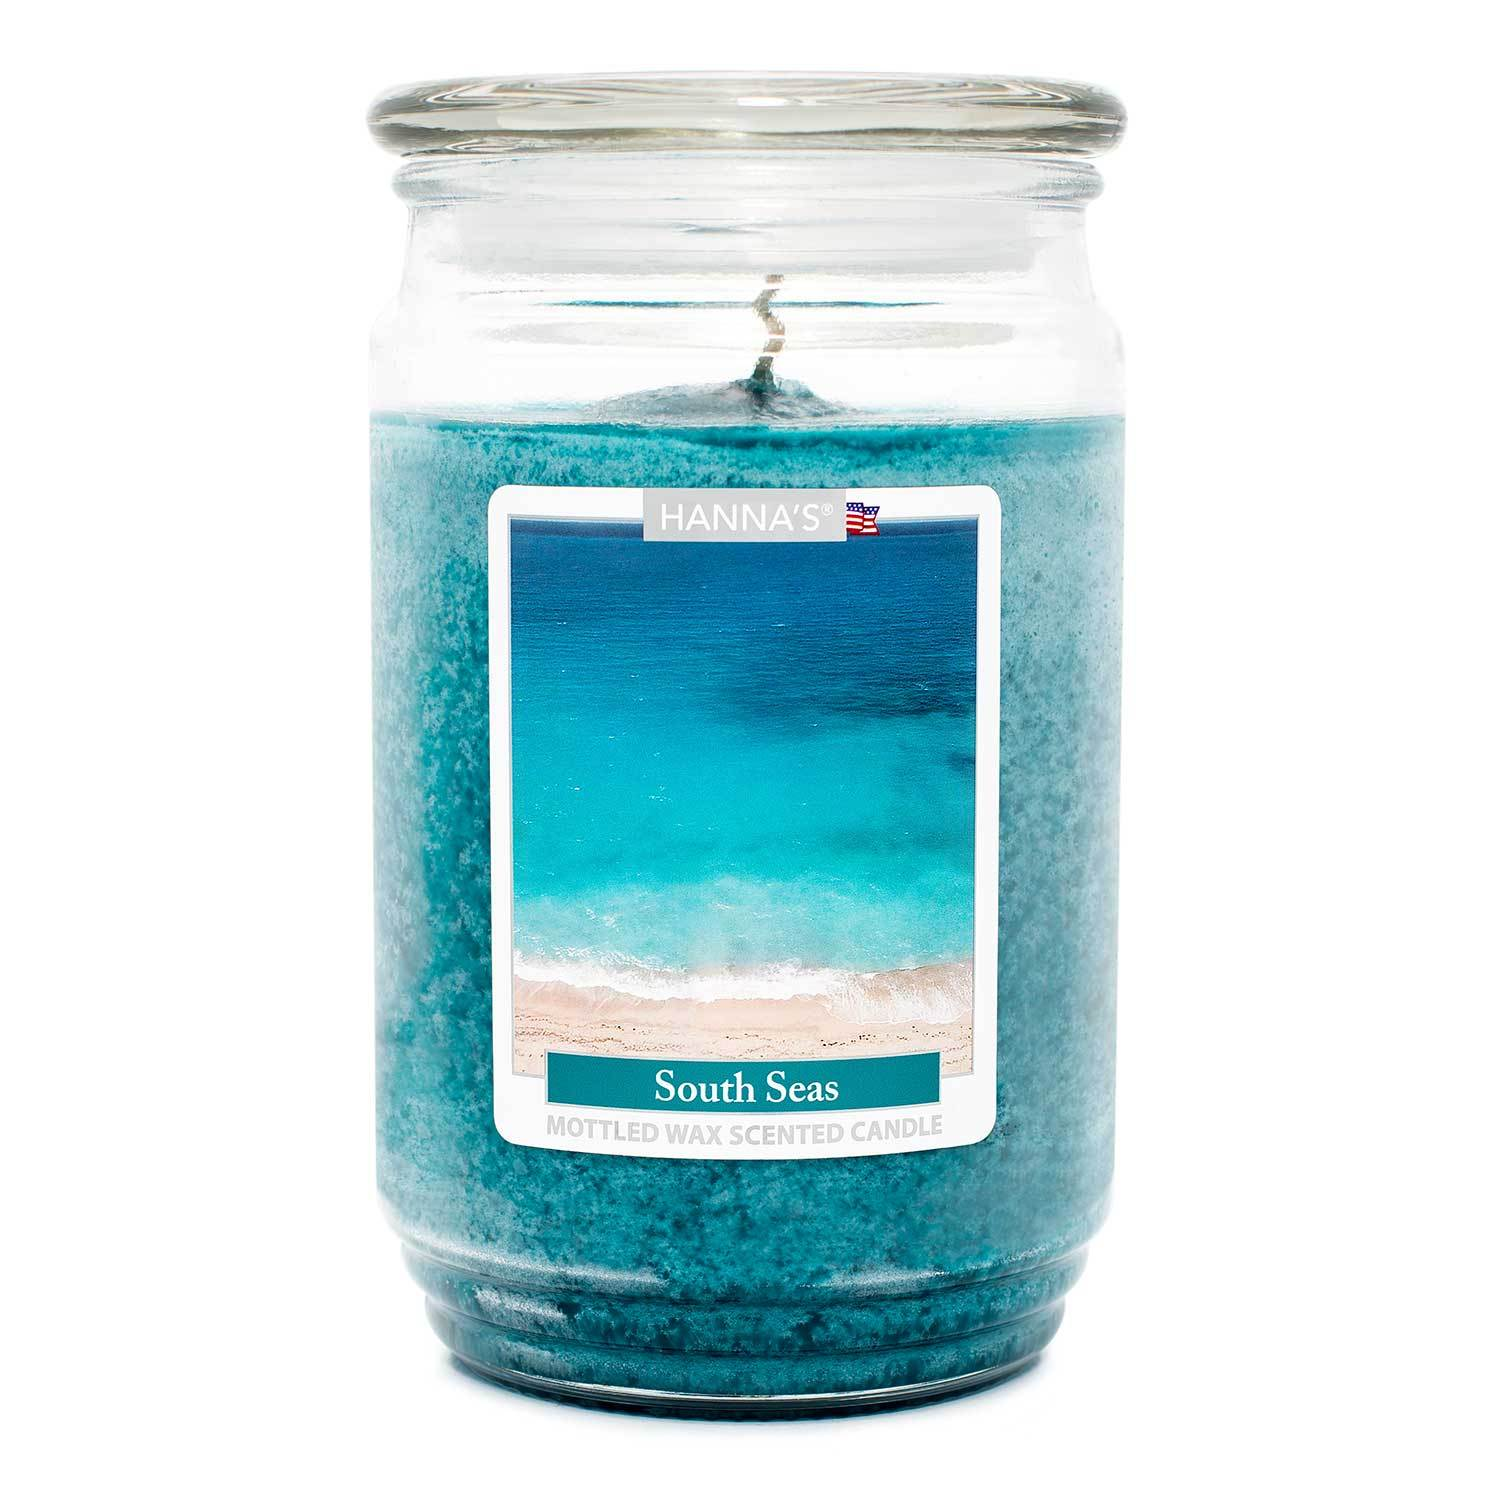 South Seas Scented Mottled Wax Candle - Candlemart.com